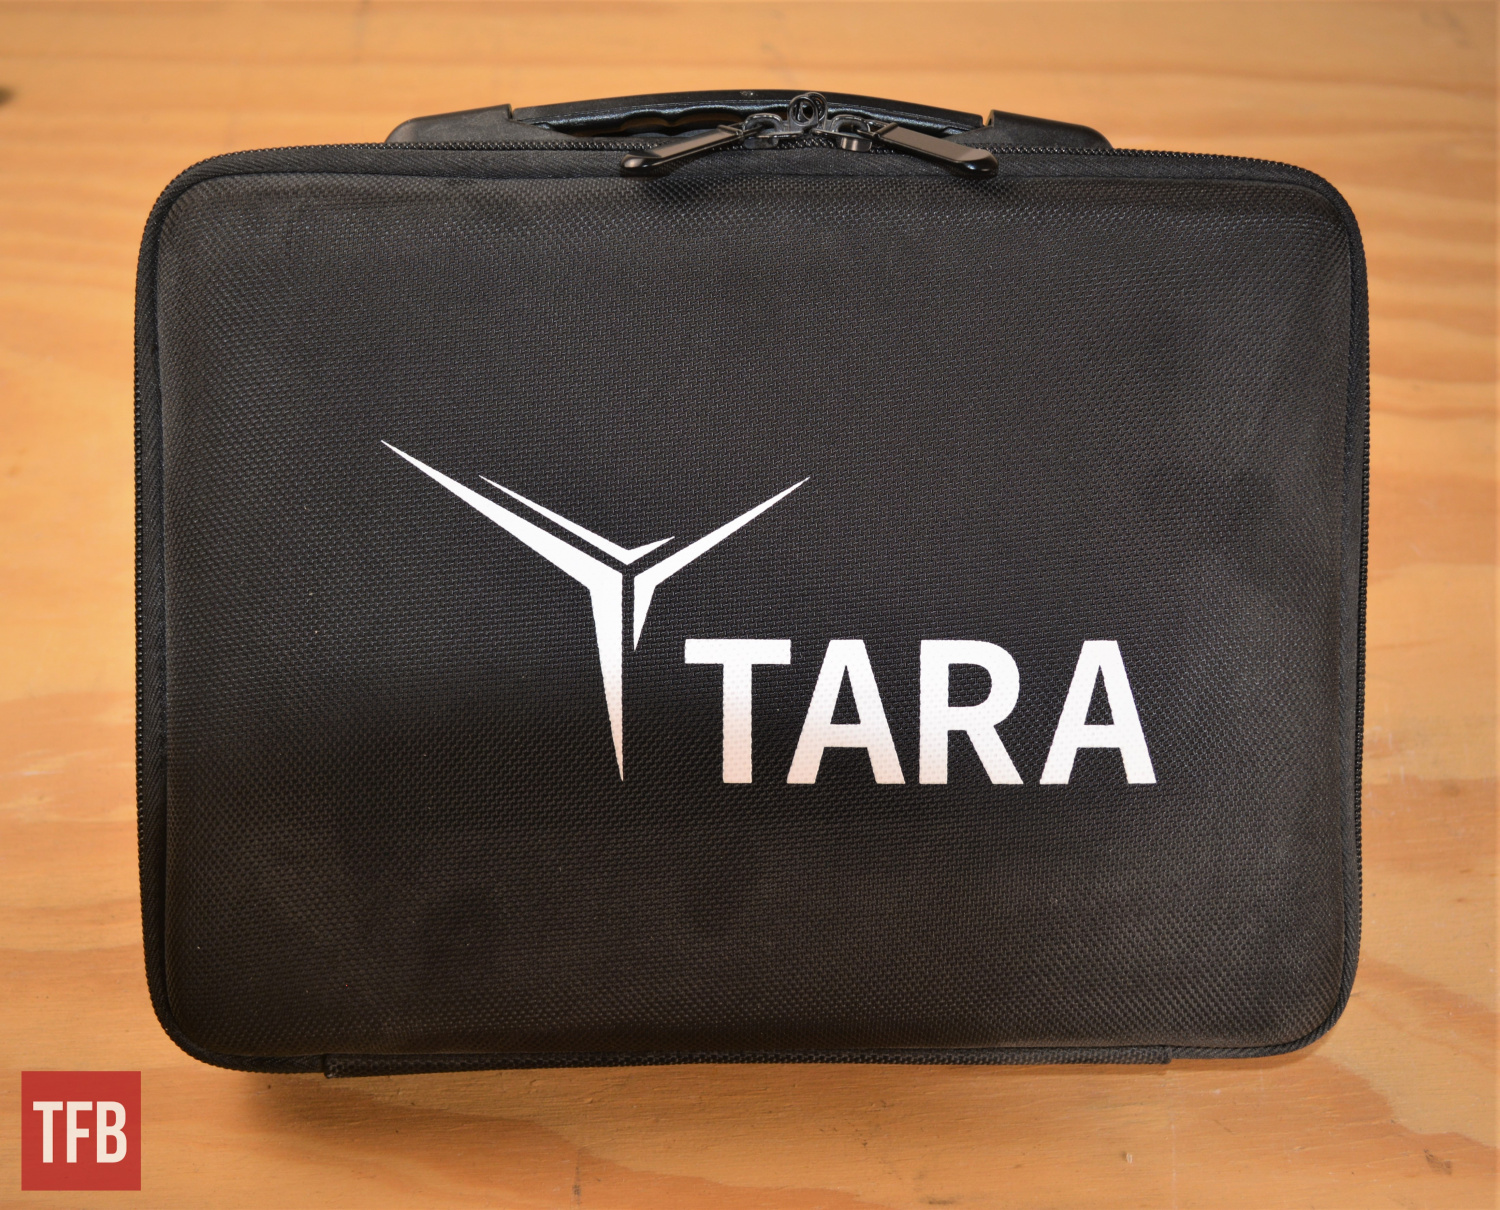 The TM-9 arrived in this nice case, with semirigid construction, a built-in handle, and nylon weave texture on the surface.